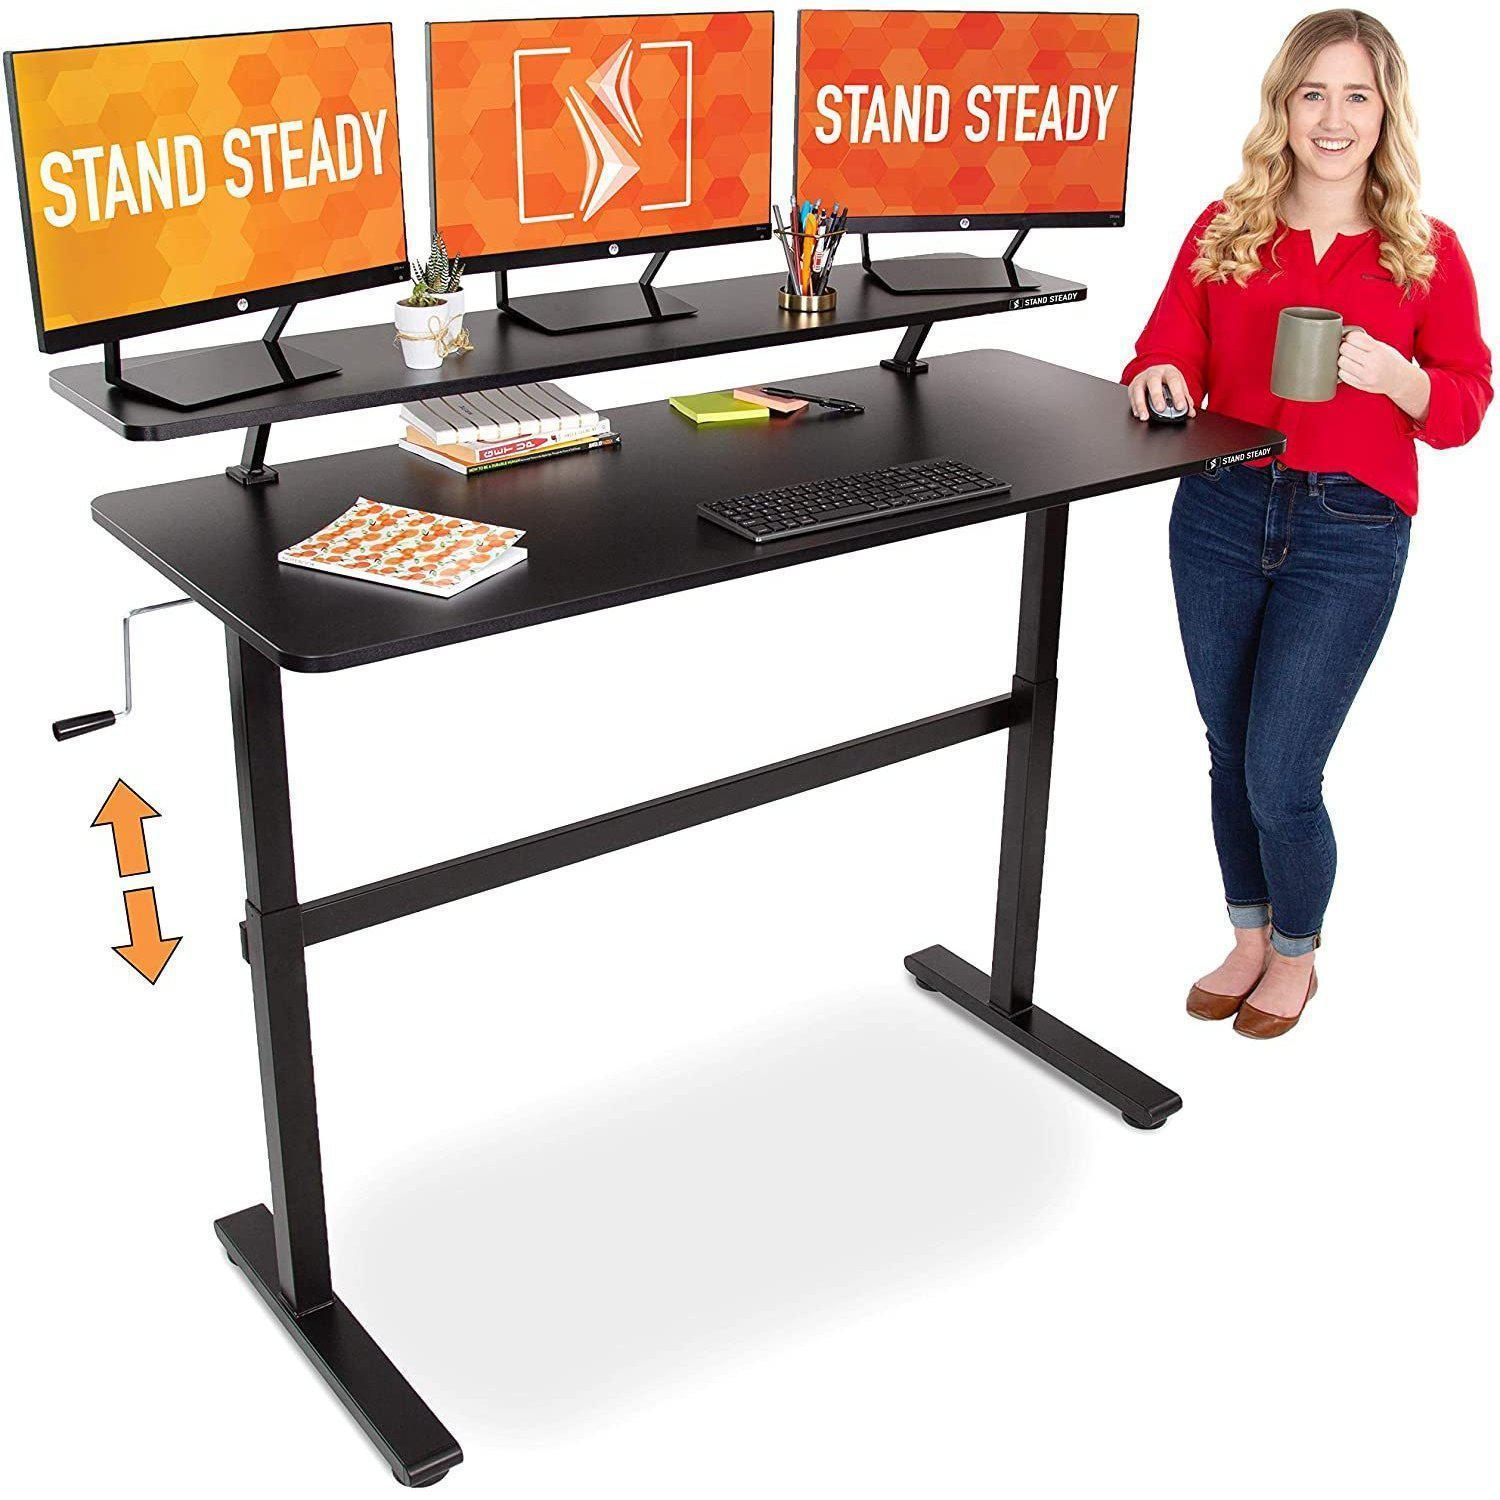 Stand Steady Tranzendesk 55 Inch Standing Desk is an extra-large desk for those who need spacious work desk to place their dual monitors, keyboards, mice, files, writing pad, diary and lot more